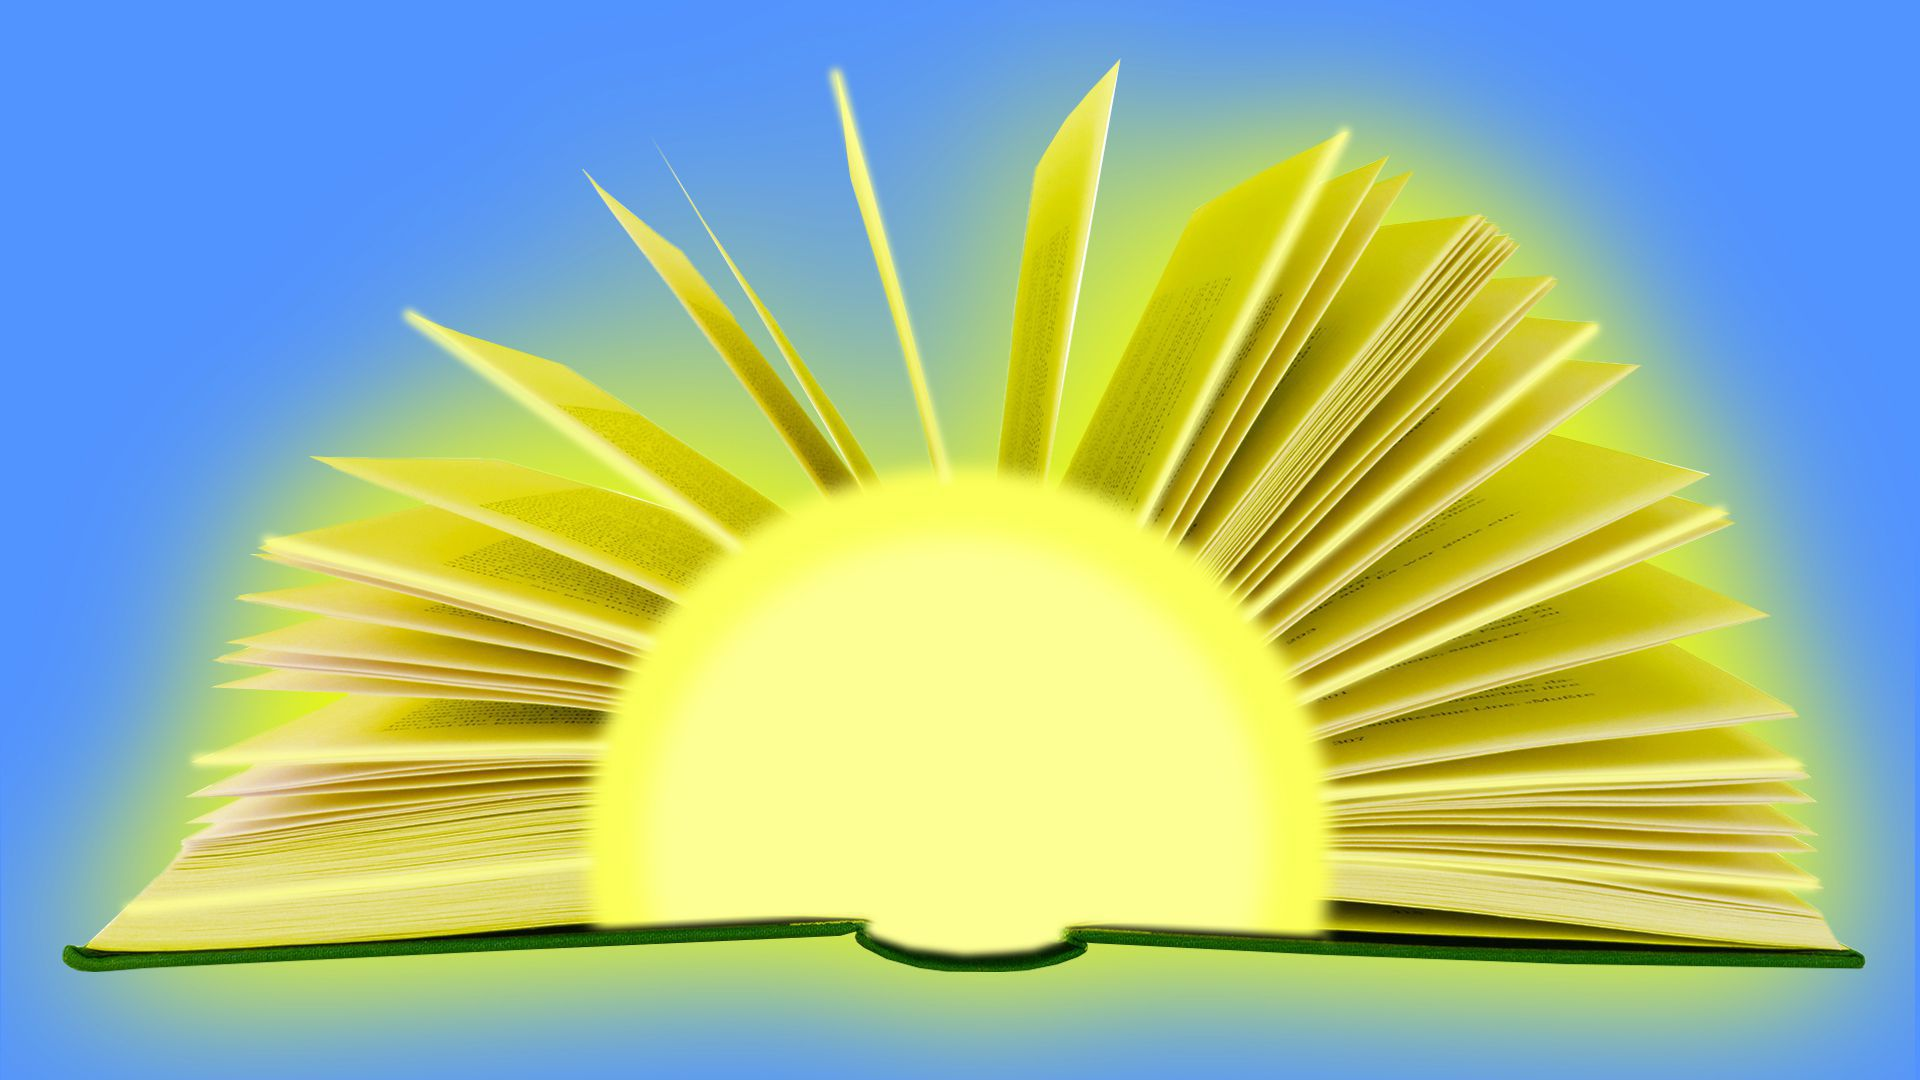 Illustration of a sun with rays made from an open book